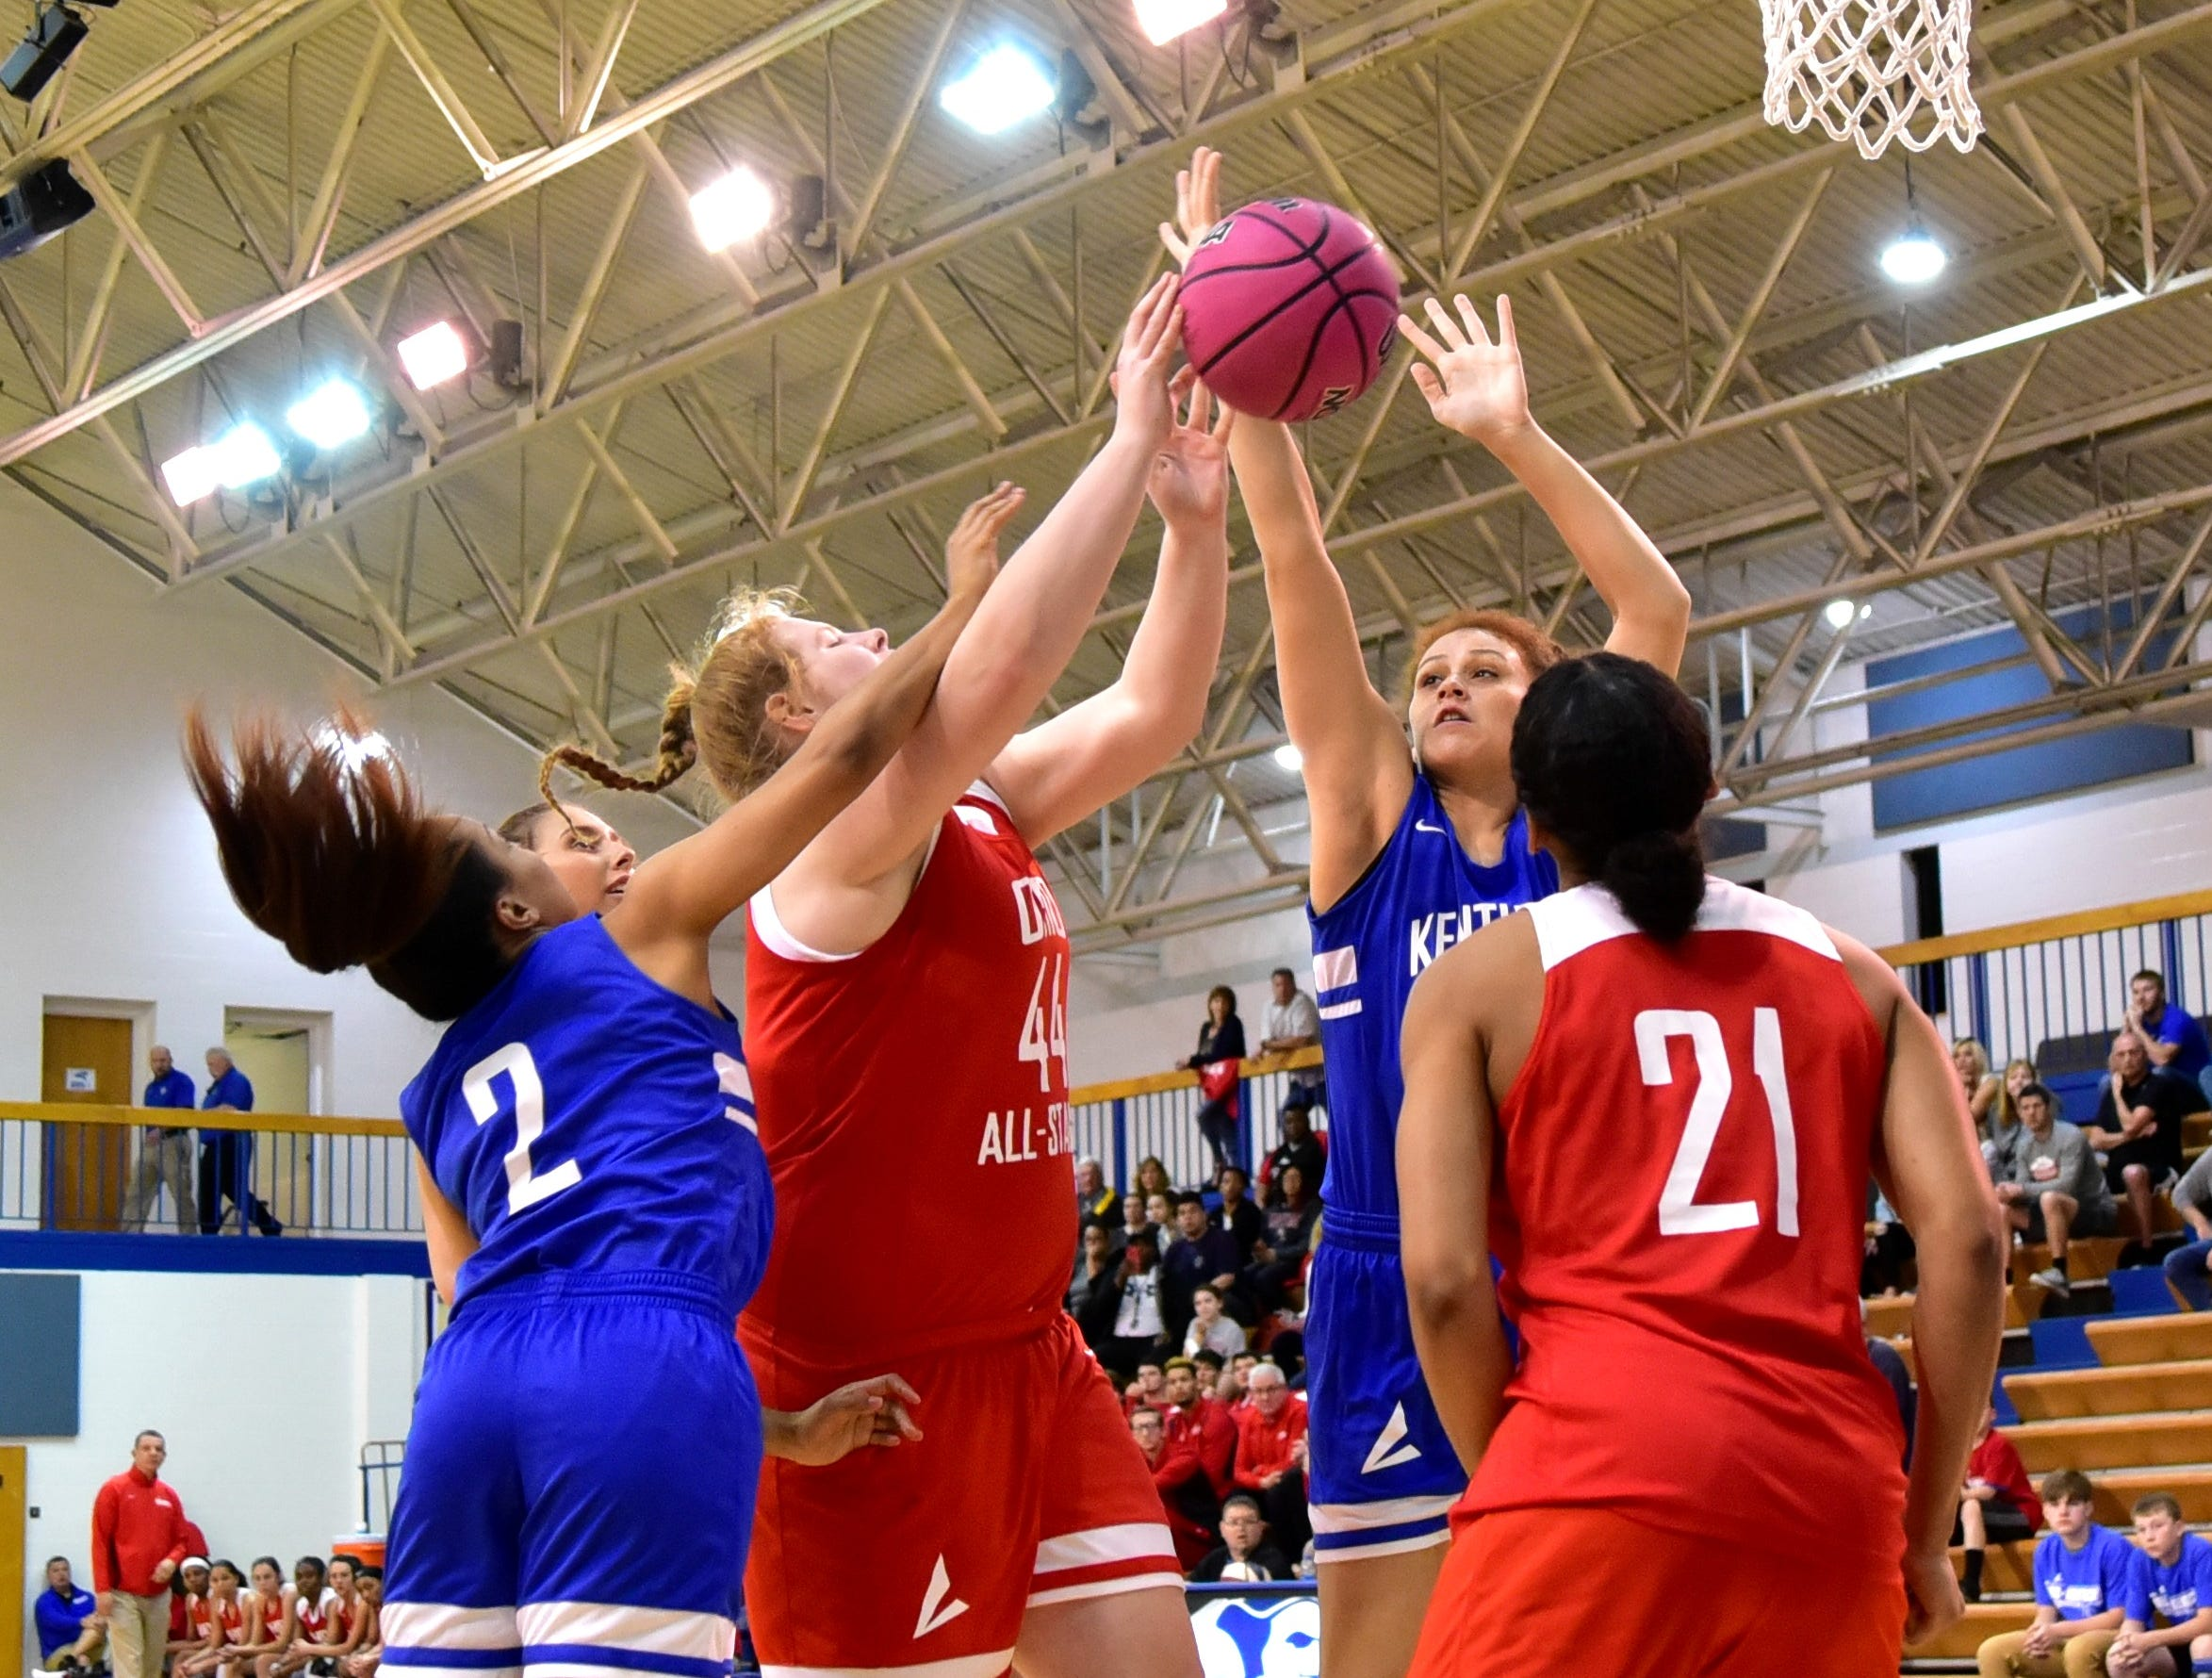 Emma Shaffer (44) of Ursuline Academy puts back an offensive rebound for the Ohio girls team at the 28th Annual Ohio-Kentucky All Star Games played at Thomas More University, April 13, 2019